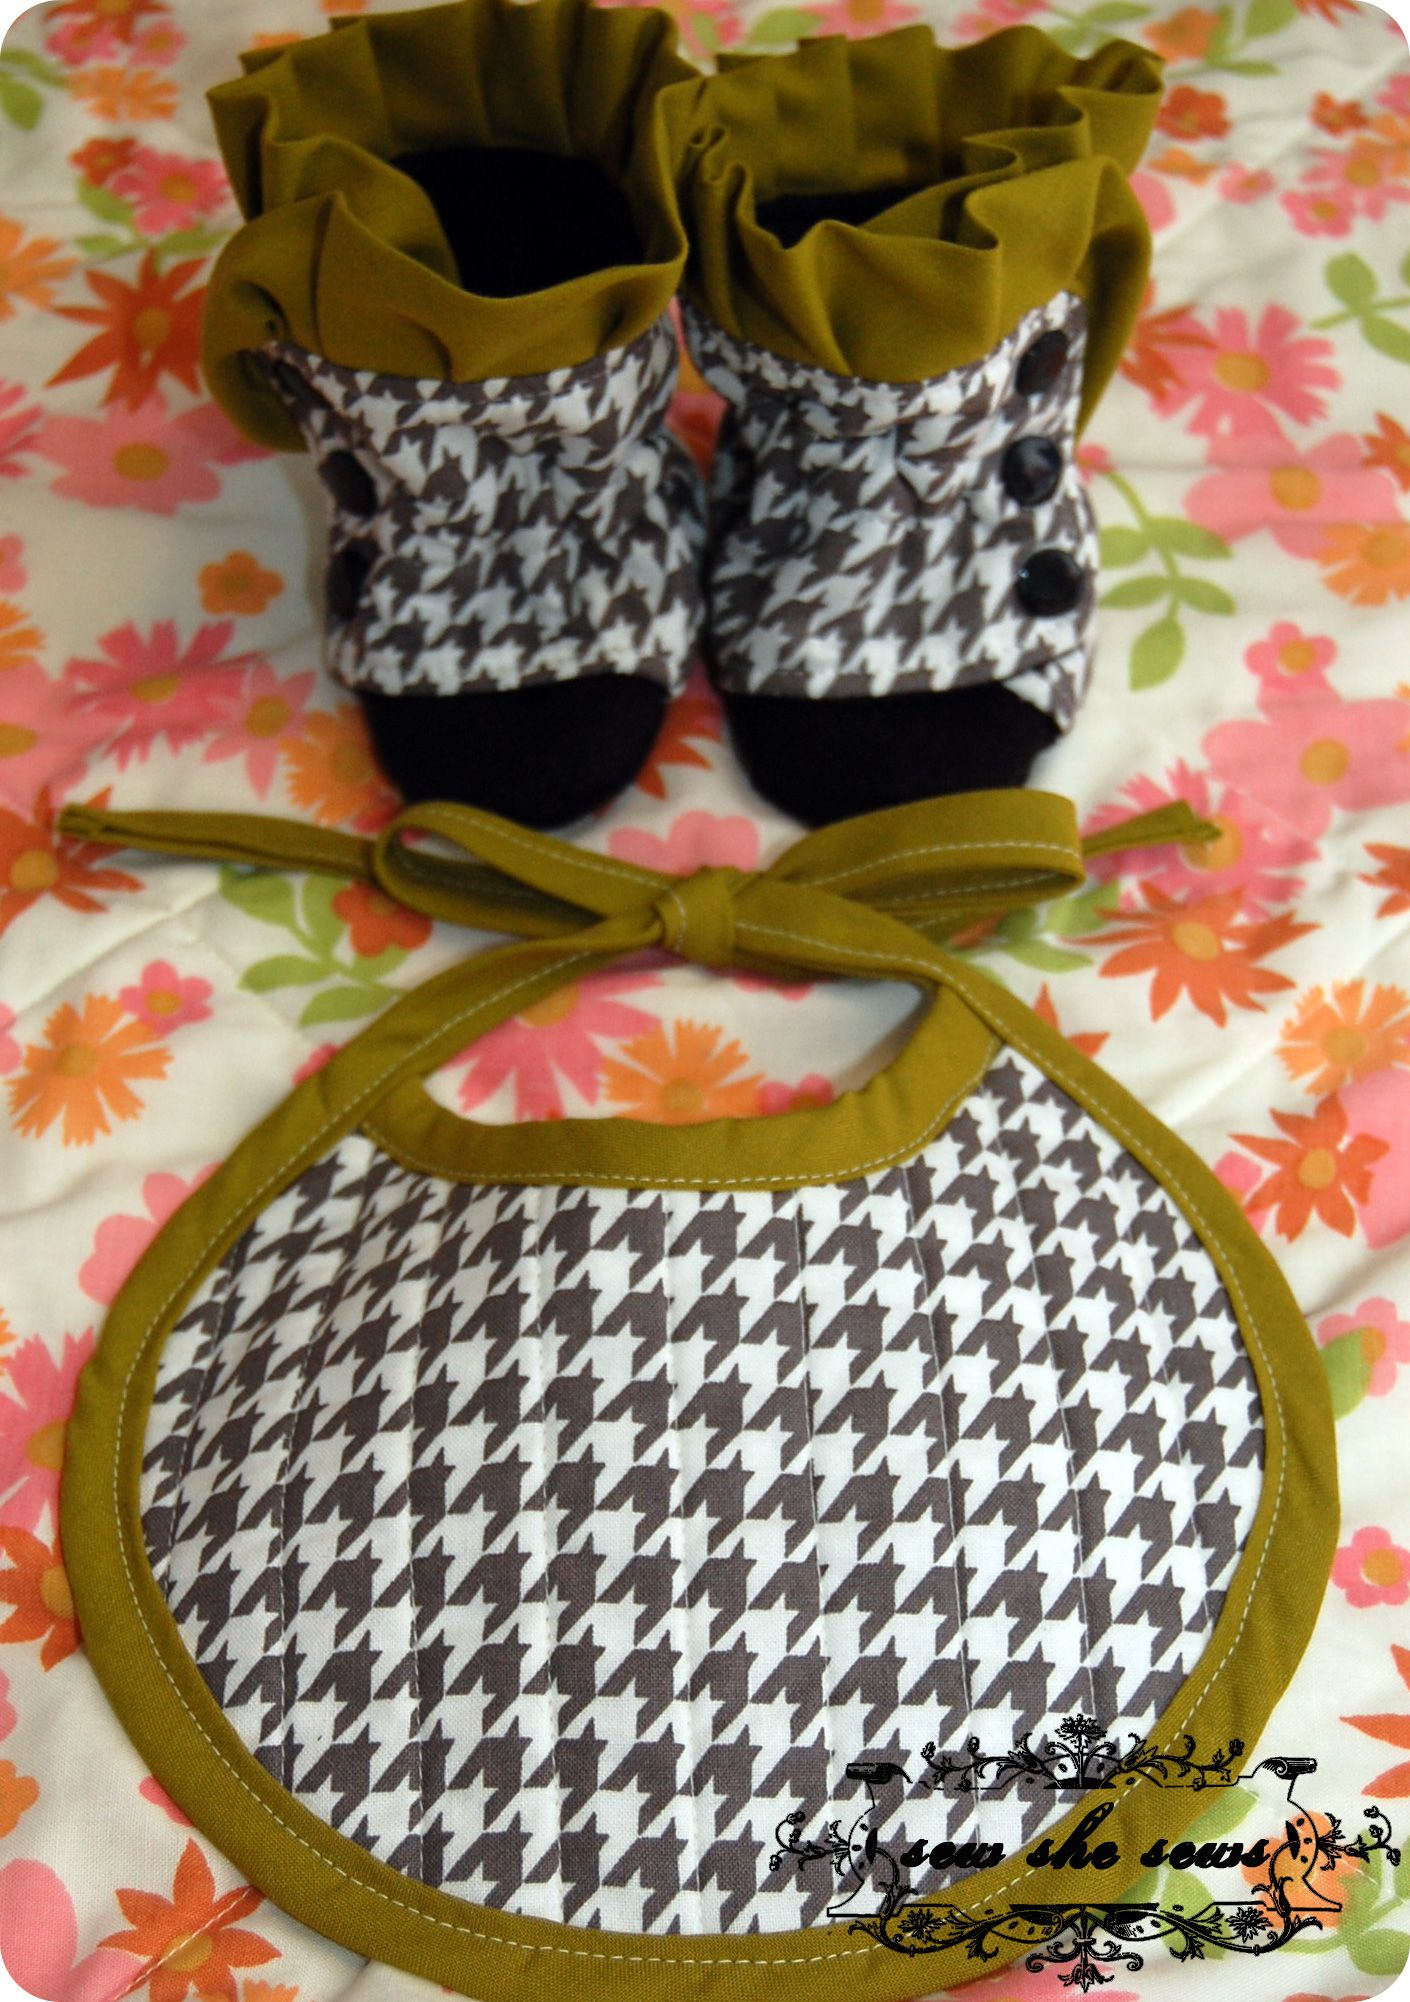 Cute hand-made shoes!   QUILTS #1   Pinterest